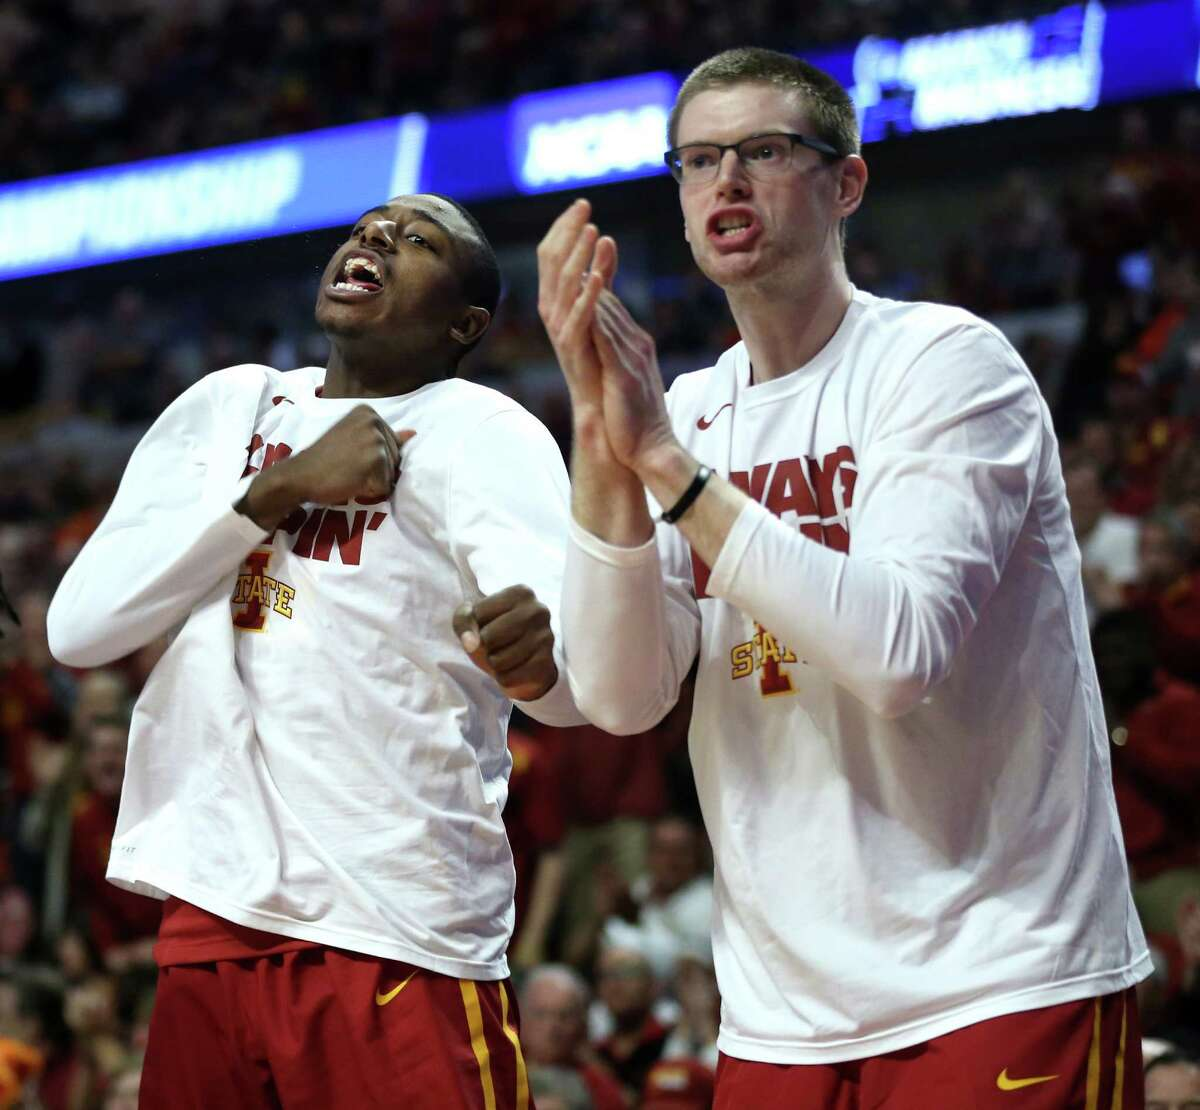 The Iowa State bench reacts during a surge against Virginia in a Sweet 16 matchup of the NCAA Tournament's Midwest region at the United Center in Chicago on Friday, March 25, 2016. Virginia advanced, 84-71.